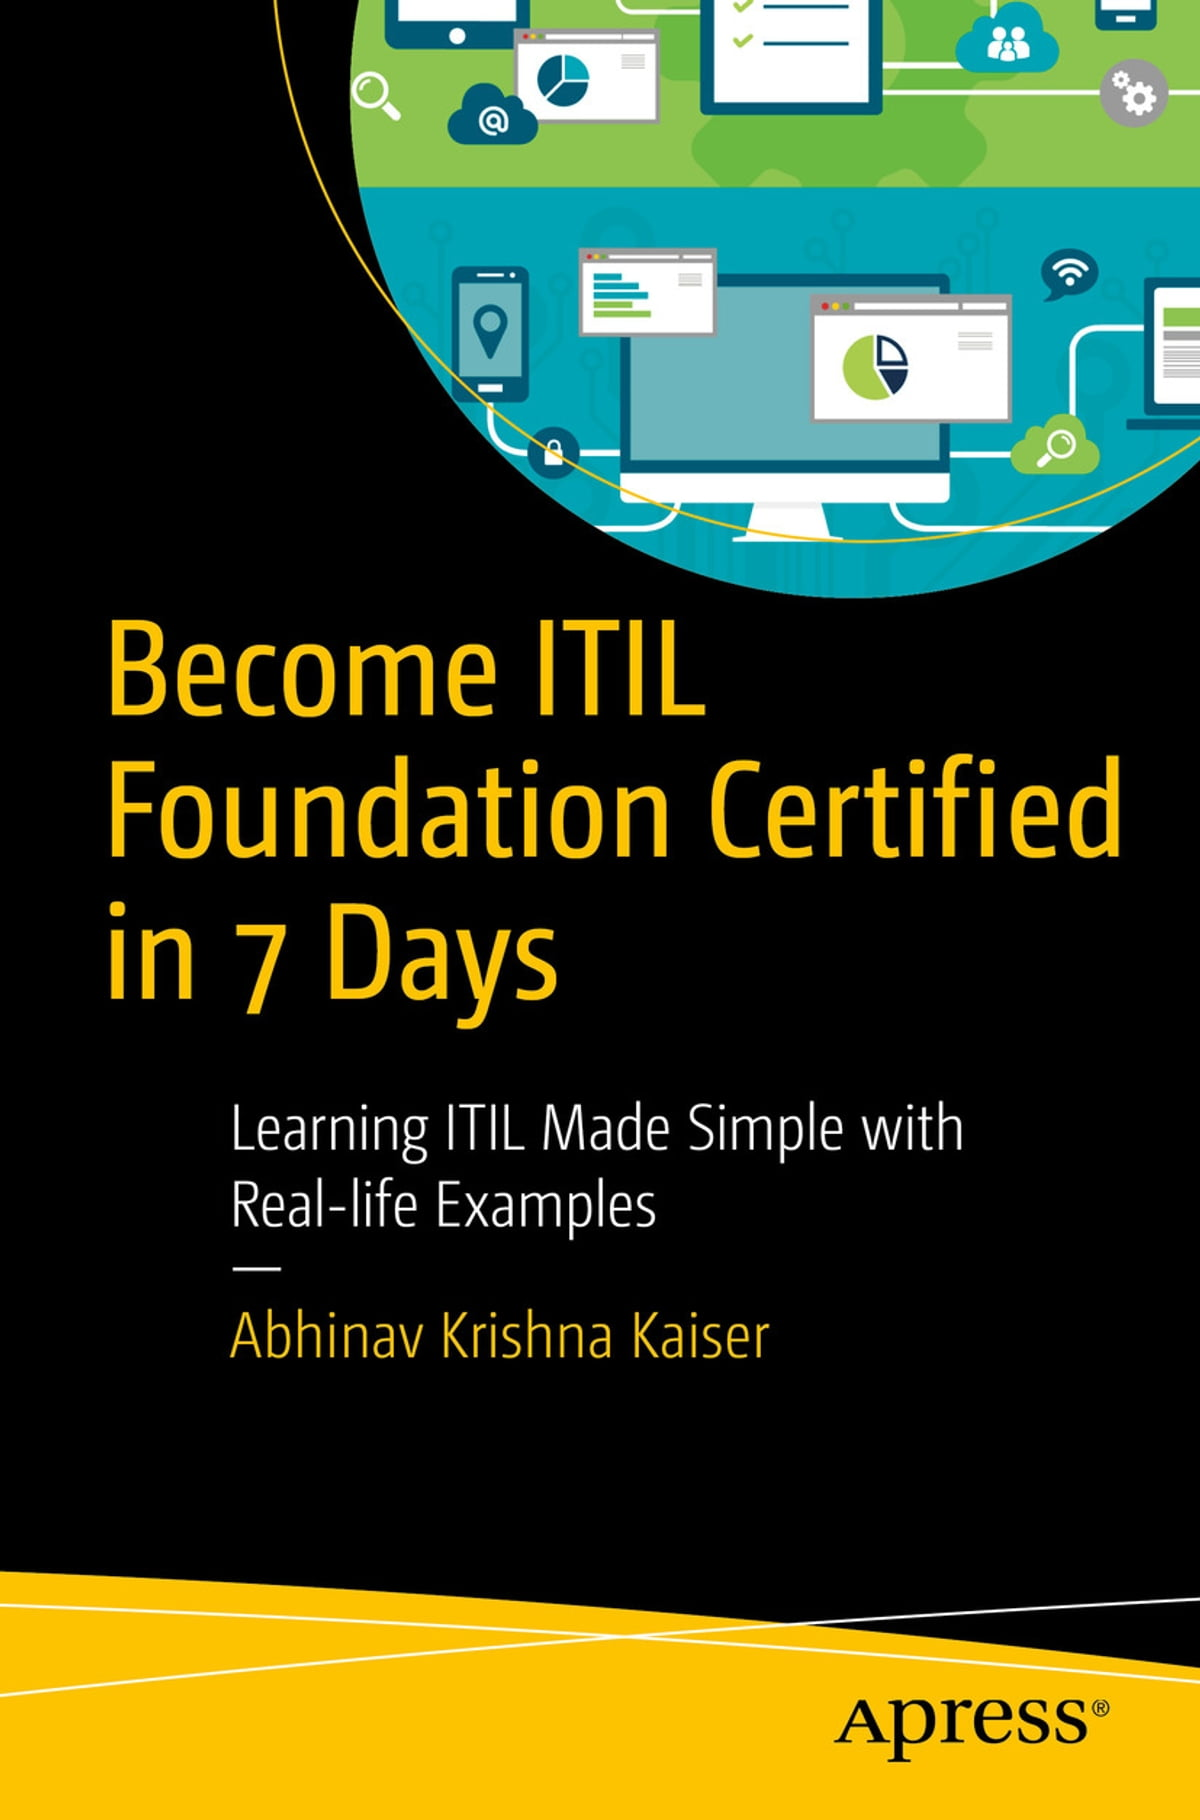 Become Itil Foundation Certified In 7 Days Ebook By Abhinav Krishna